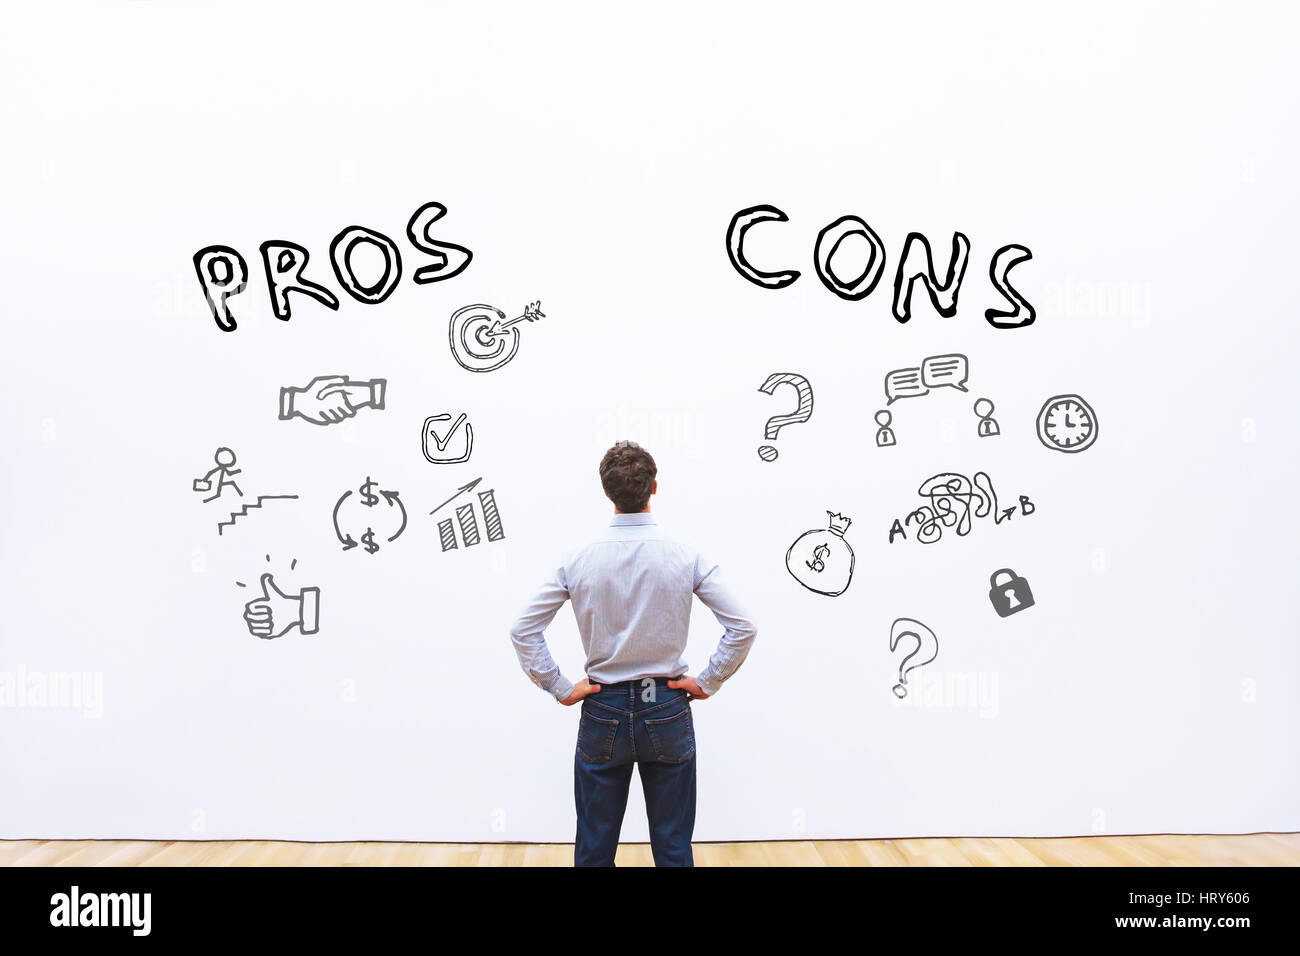 pros and cons, advantage disadvantage concept - Stock Image